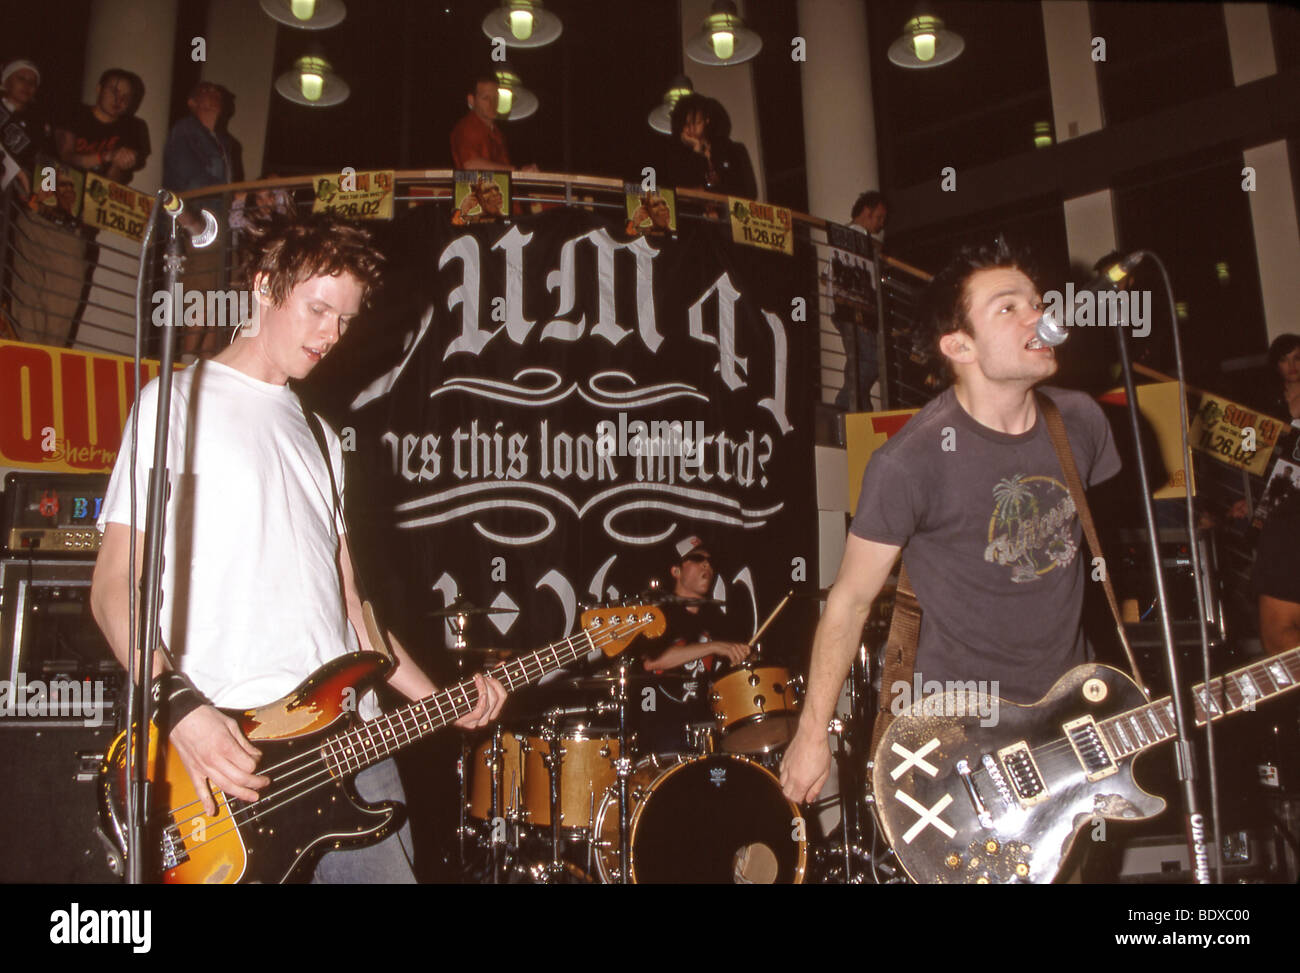 SUM 41  - Canadian punk group in November 2002 with Deryck Whibley at right - Stock Image